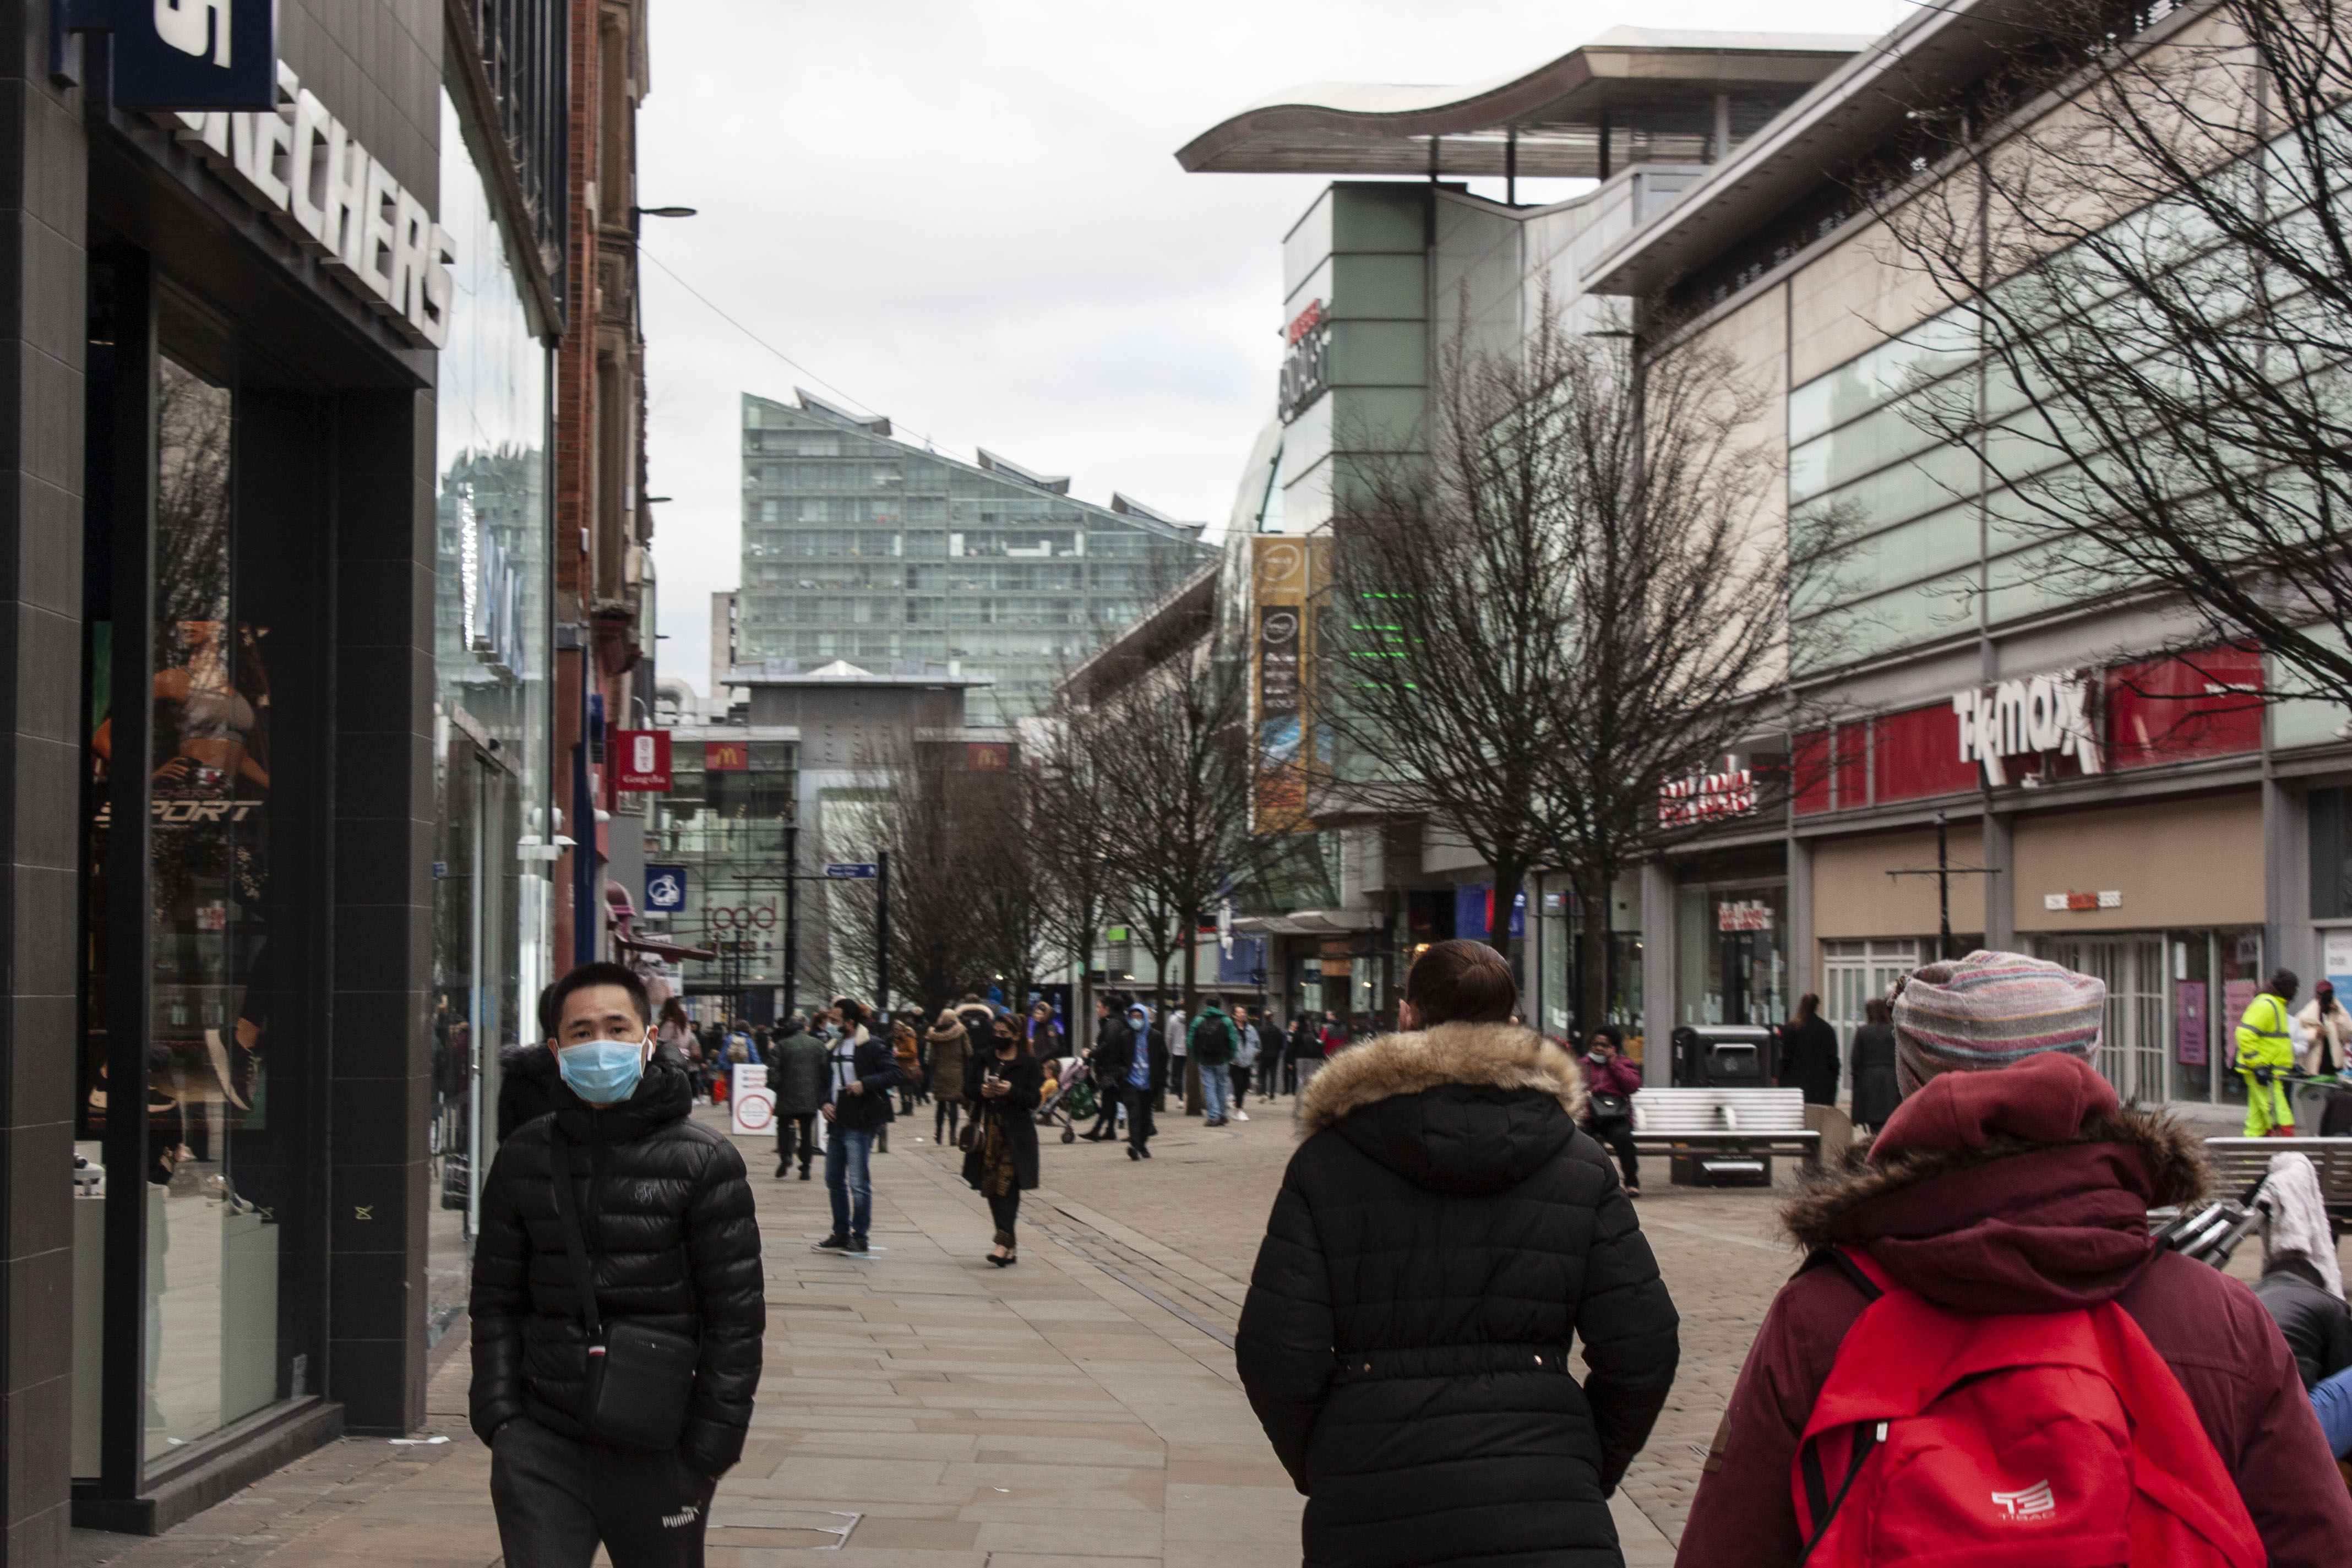 Busy city centre with a masked pedestrian as main subject